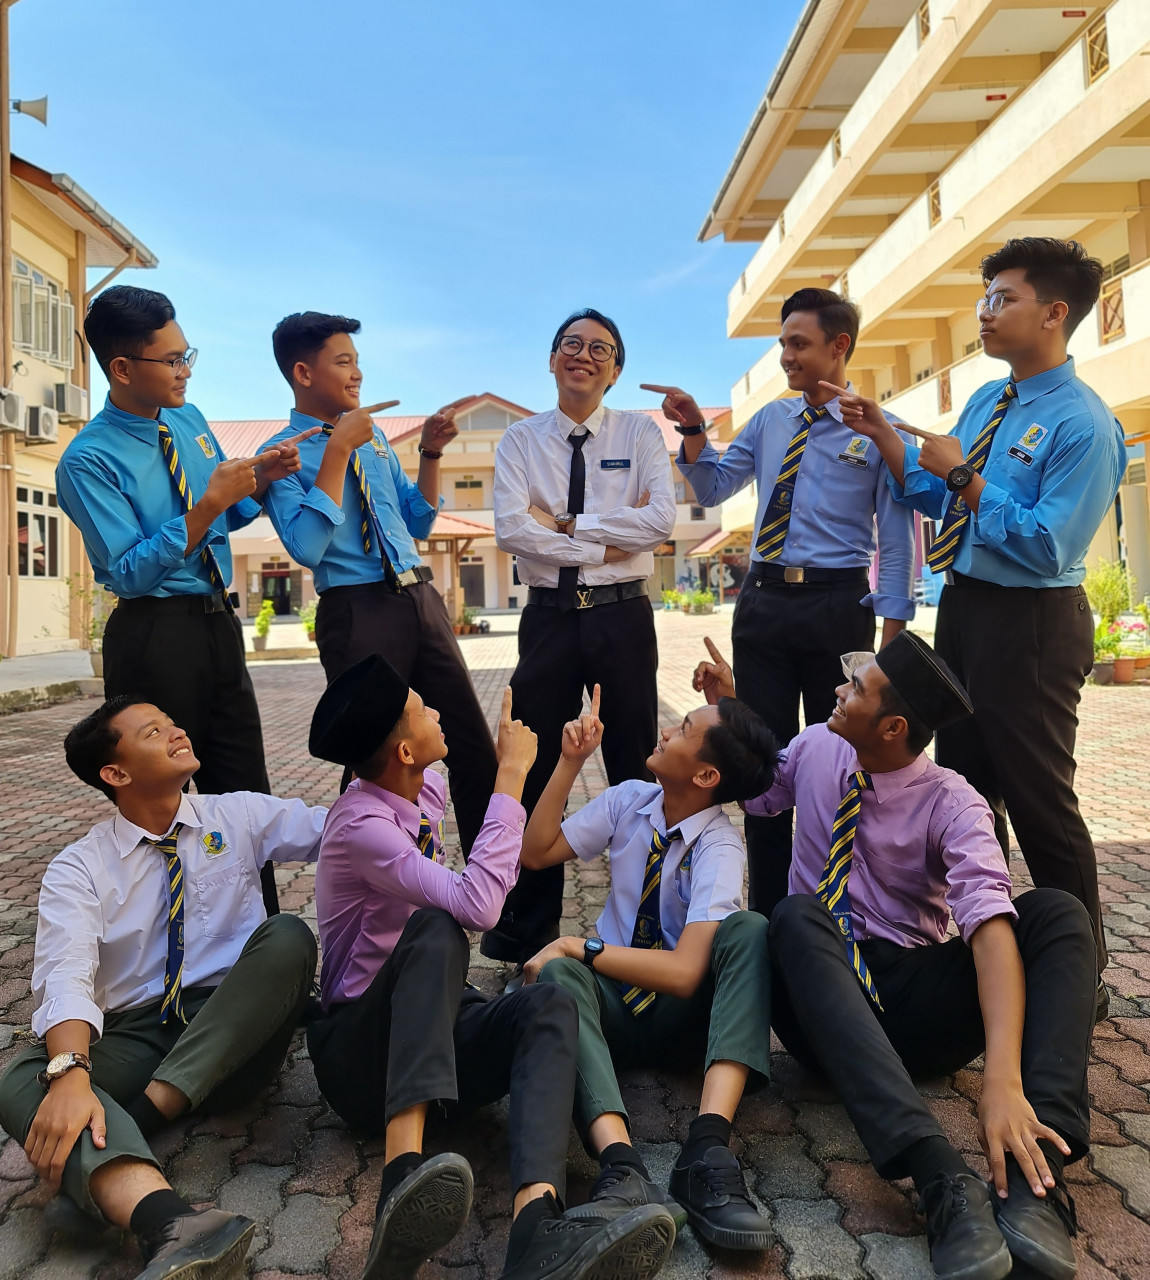 The English teacher based in Kelantan is on a mission to create an environment where pupils would not make fun of each other or scared to learn the language. – Pic courtesy of Ahmad Shahrul Azhan Ibrahim